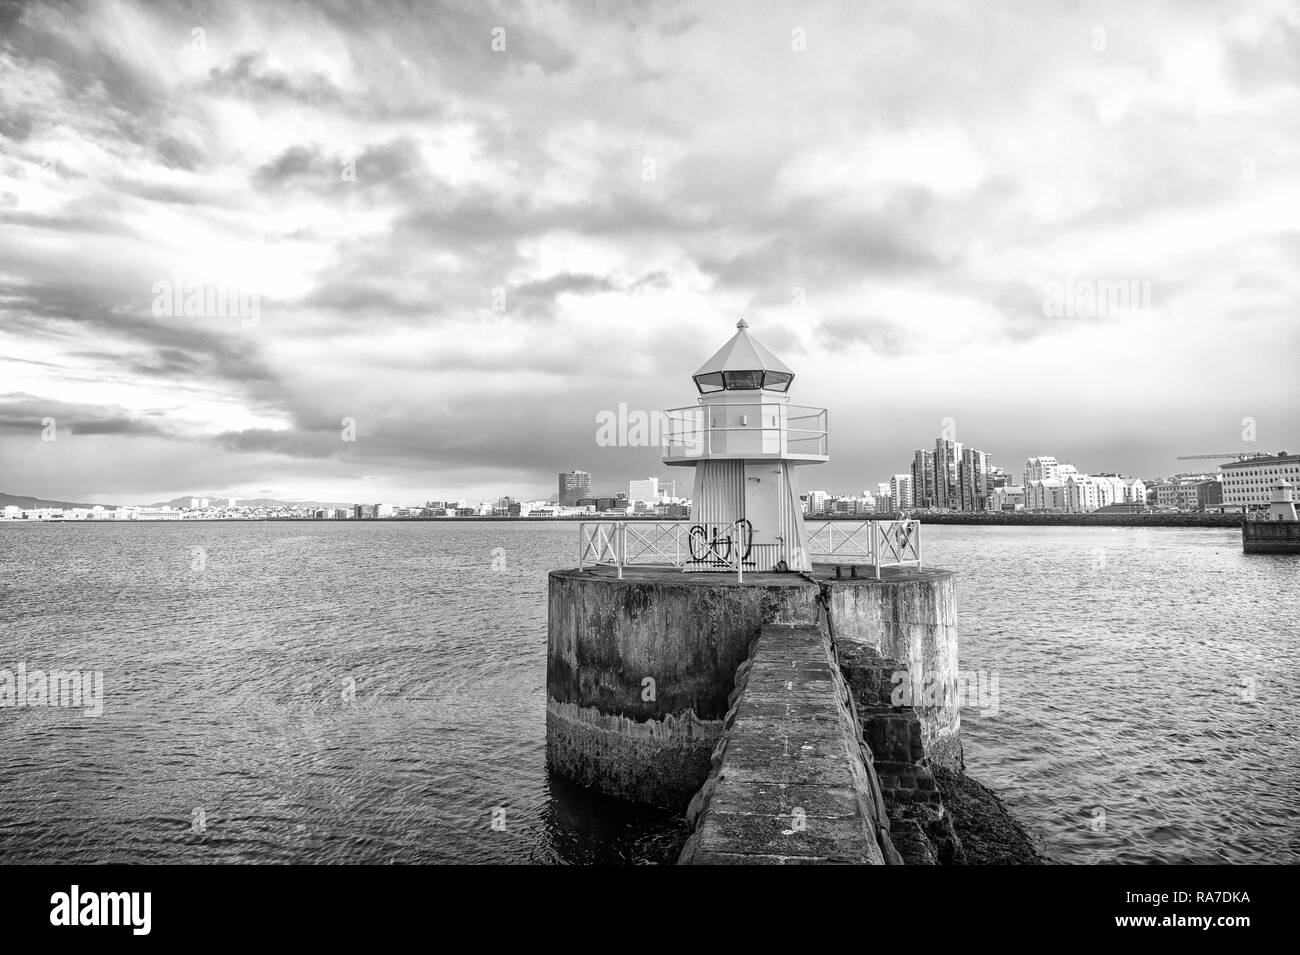 Lighthouse tower on stone pier in reykjavik, iceland. Lighthouse in sea. Seascape and skyline on cloudy sky. Architecture structure and design. Navigational aid concept. Wanderlust and travelling. - Stock Image